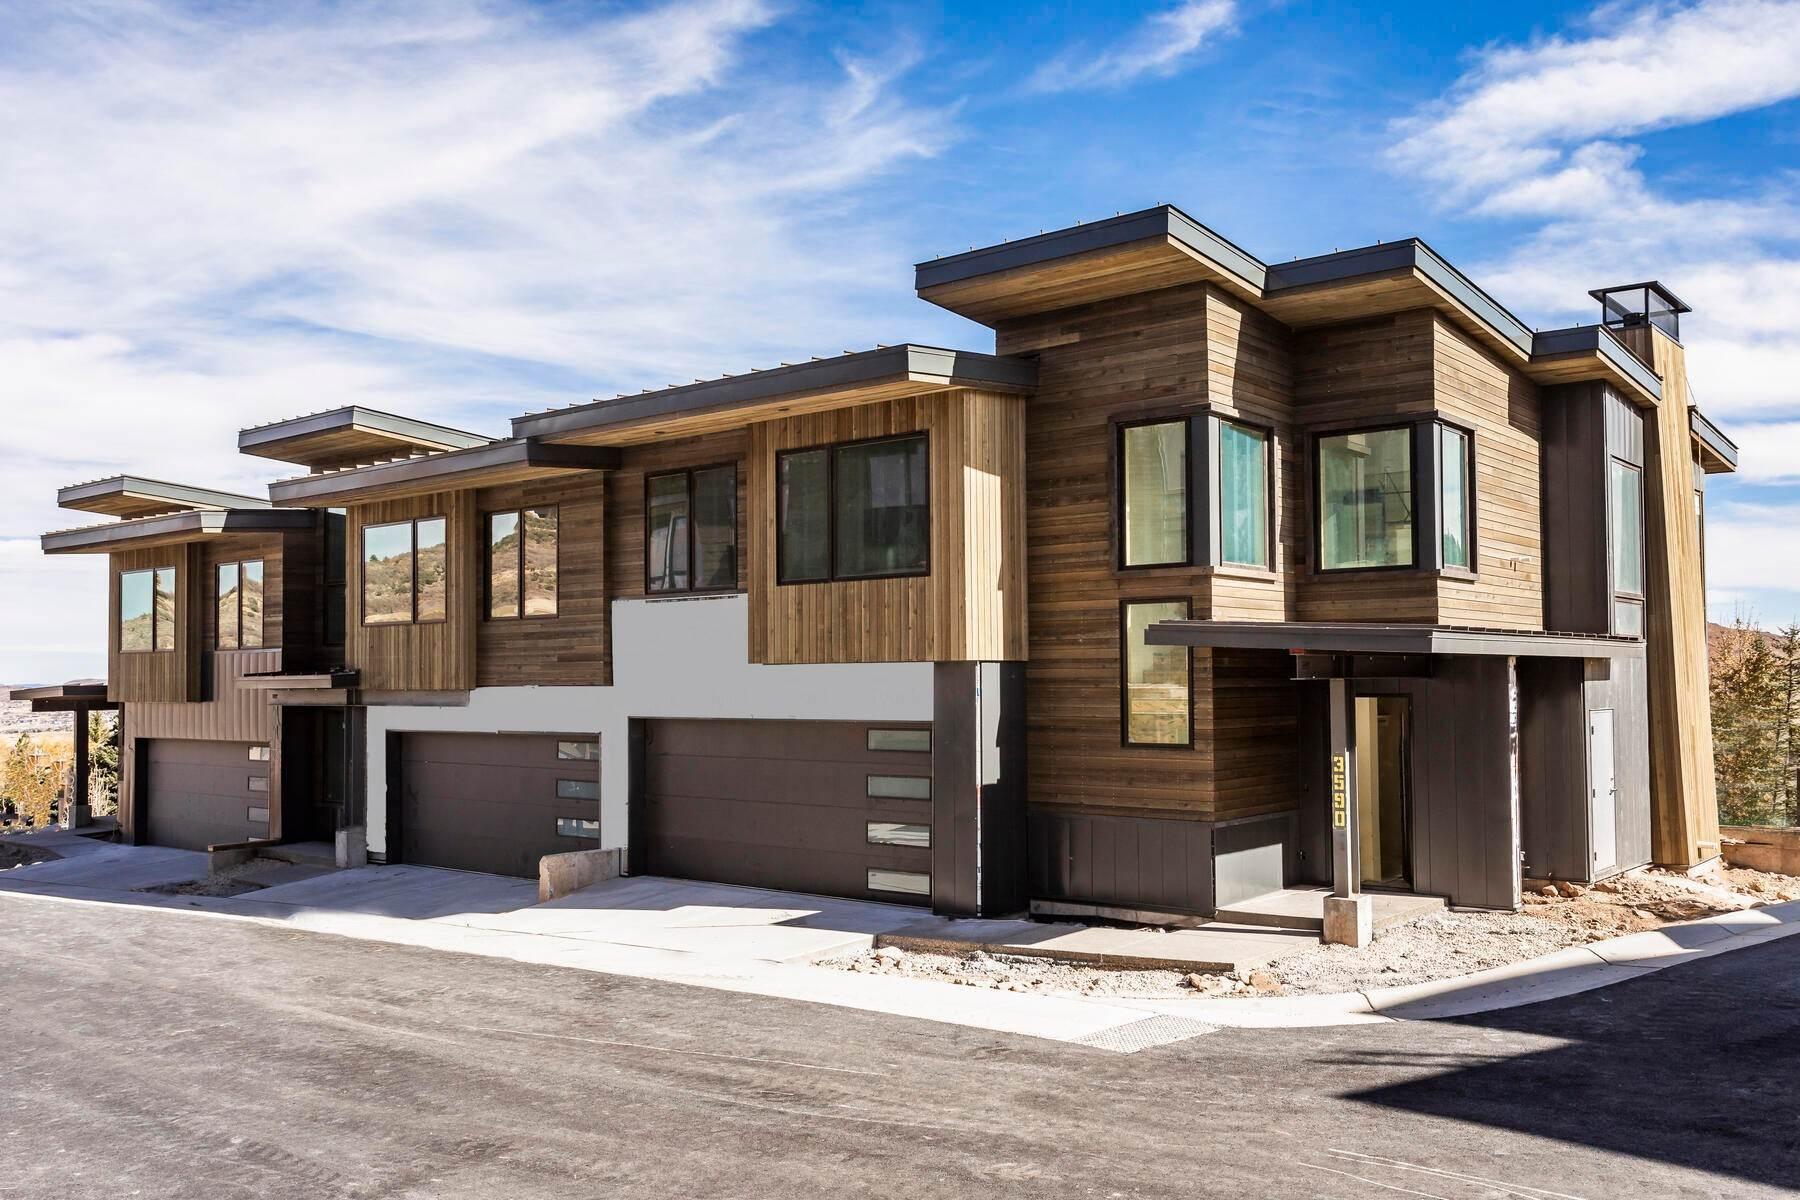 19. townhouses for Sale at Ski-In Townhomes in Canyons Village 3532 Ridgeline Drive Park City, Utah 84098 United States